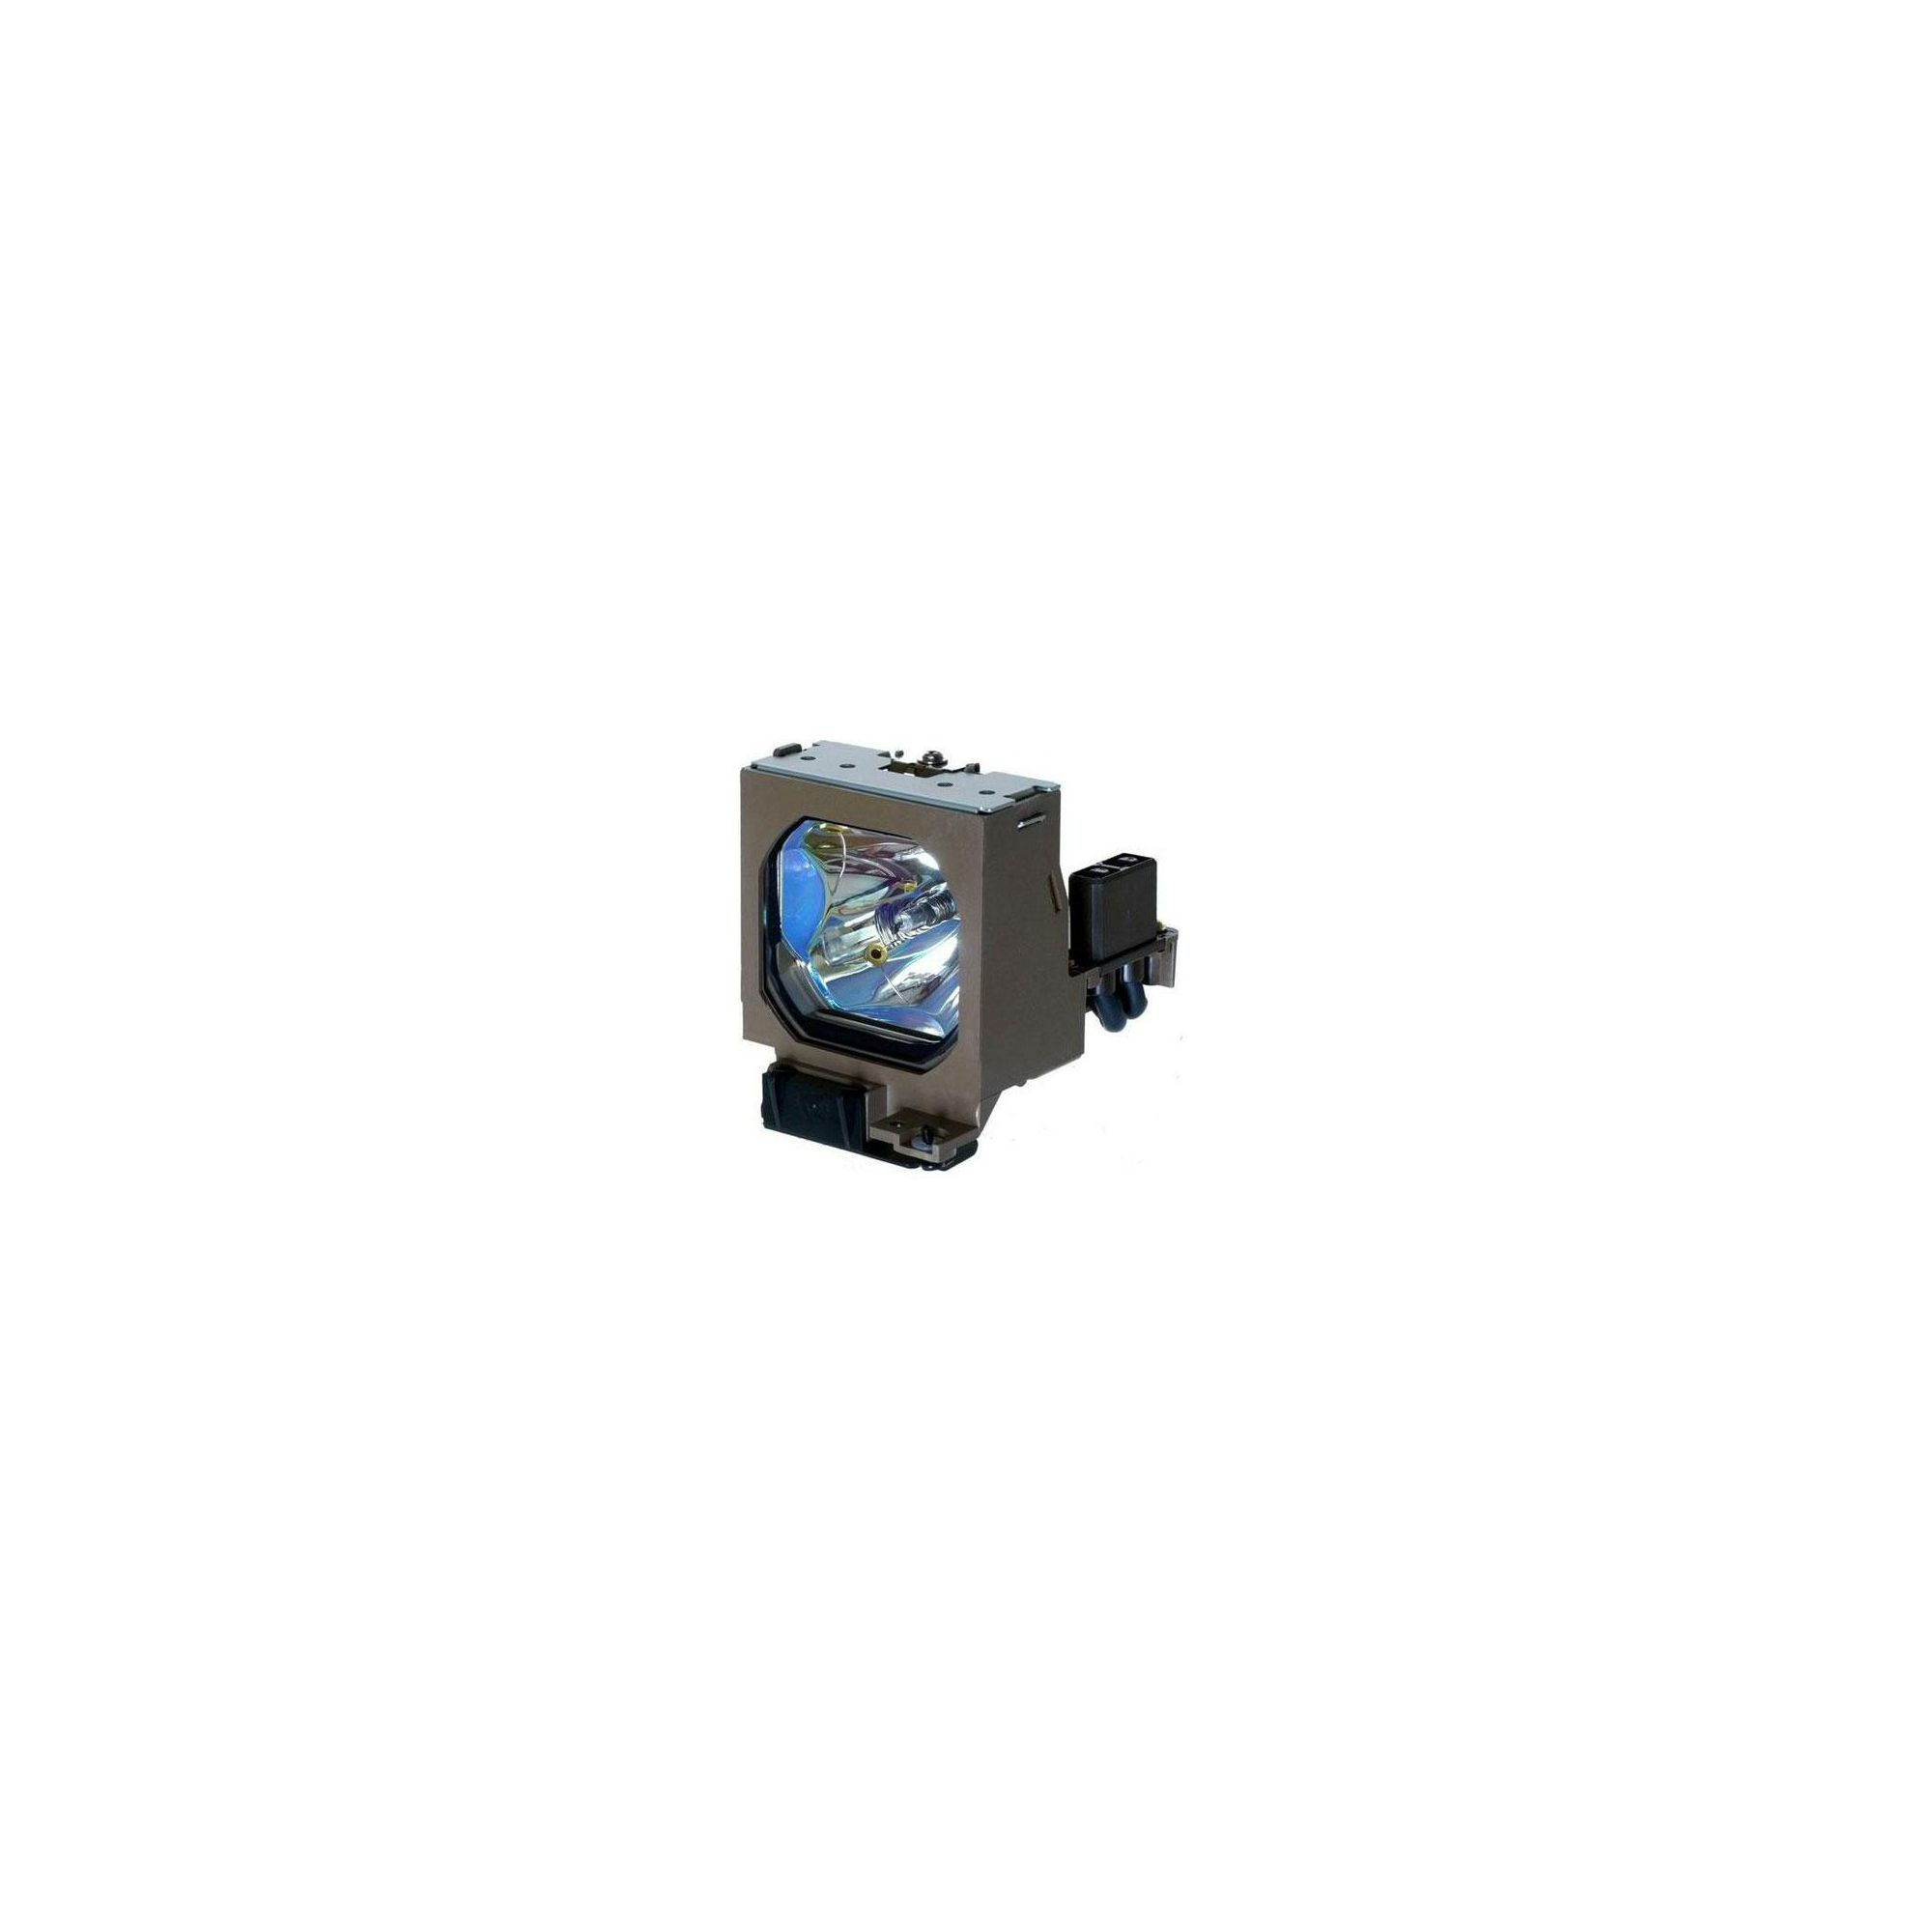 Sony LMP-P201 Replacement Projector Lamp for VPL-VW12HT Projector at Tesco Direct